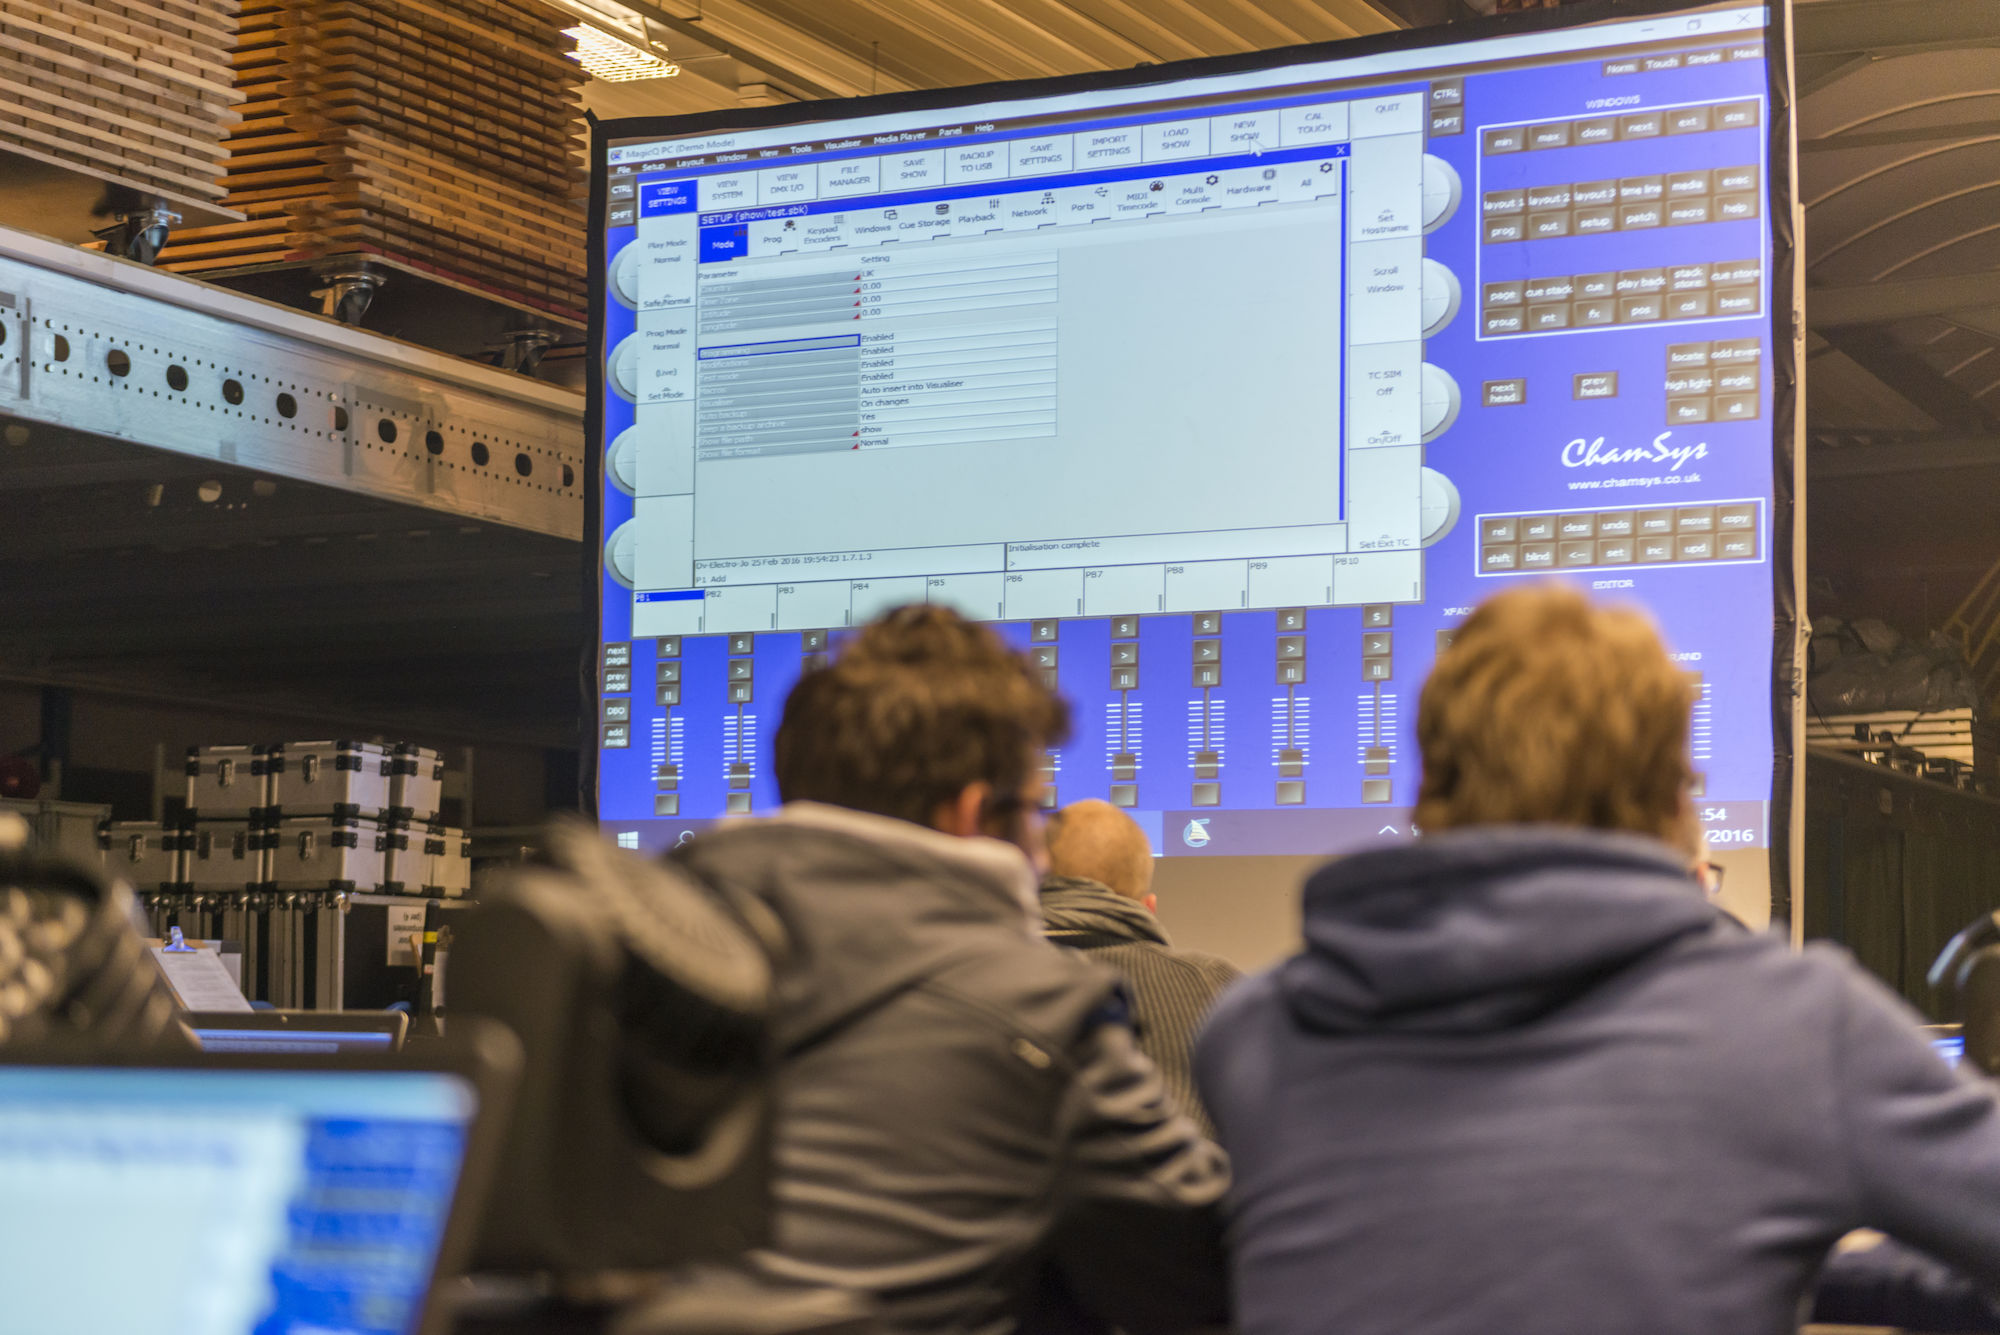 160225-uitleendienst-workshop-chamsys-12.jpg